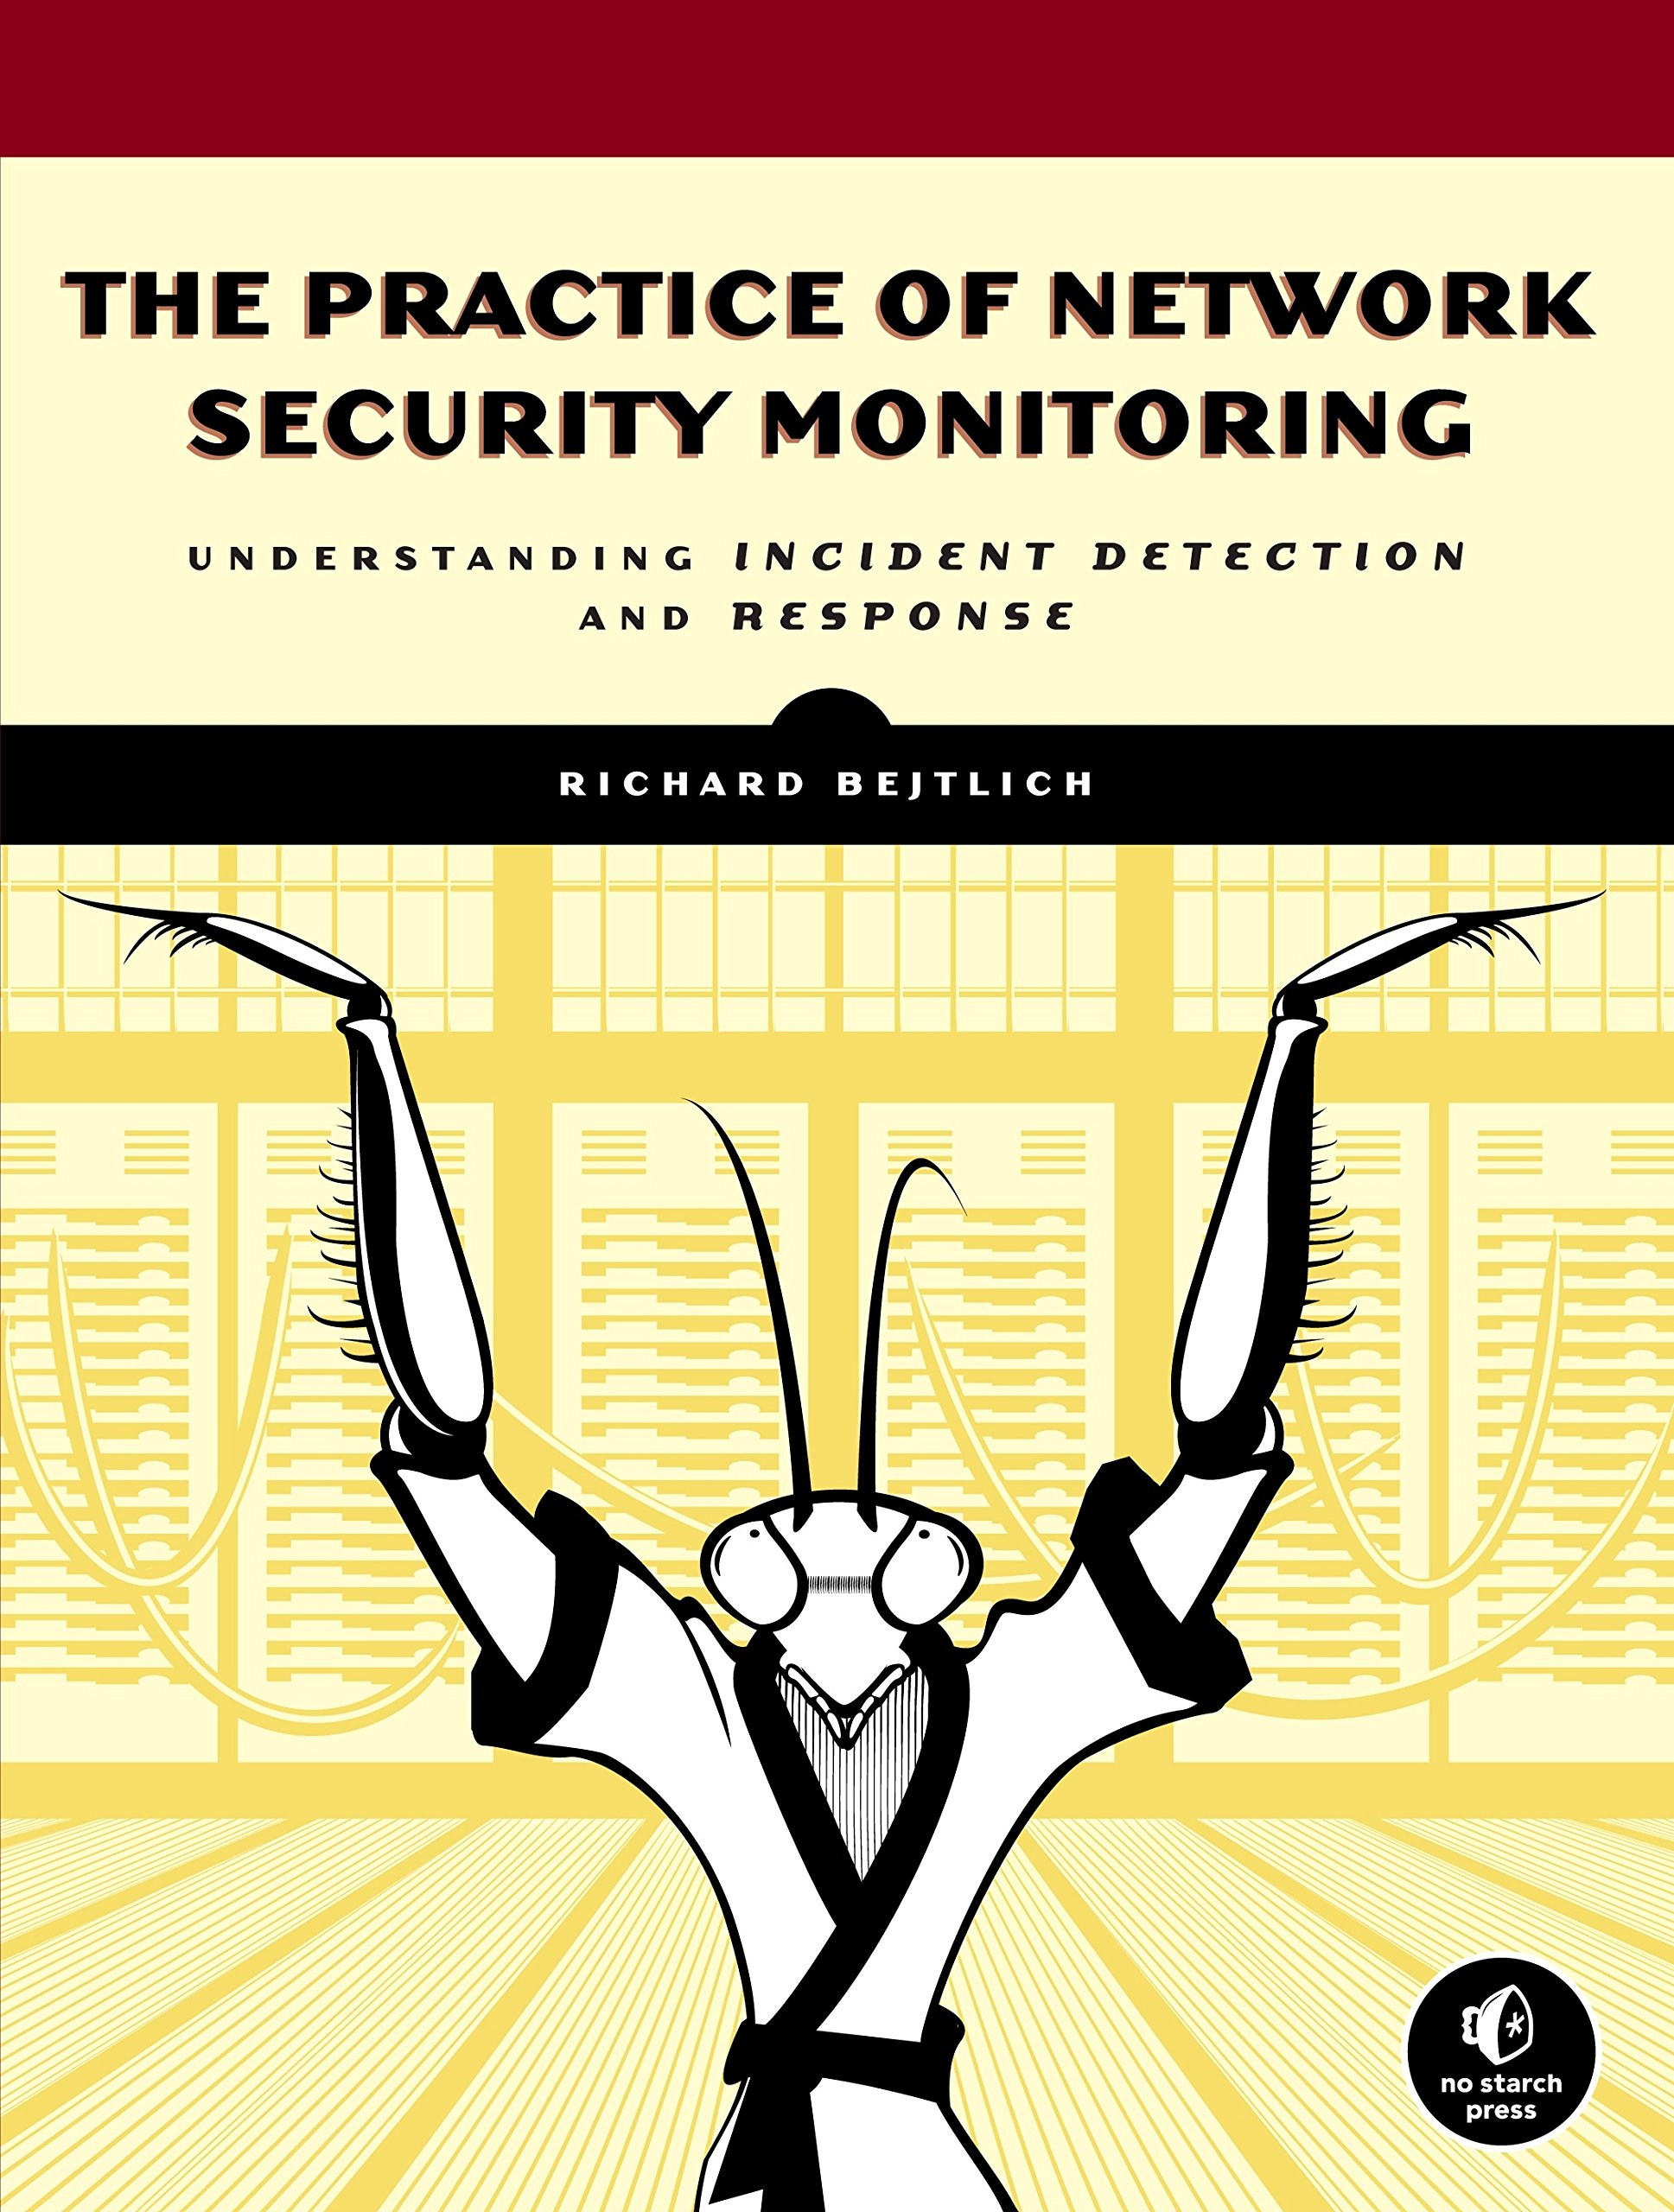 Image OfThe Practice Of Network Security Monitoring: Understanding Incident Detection And Response